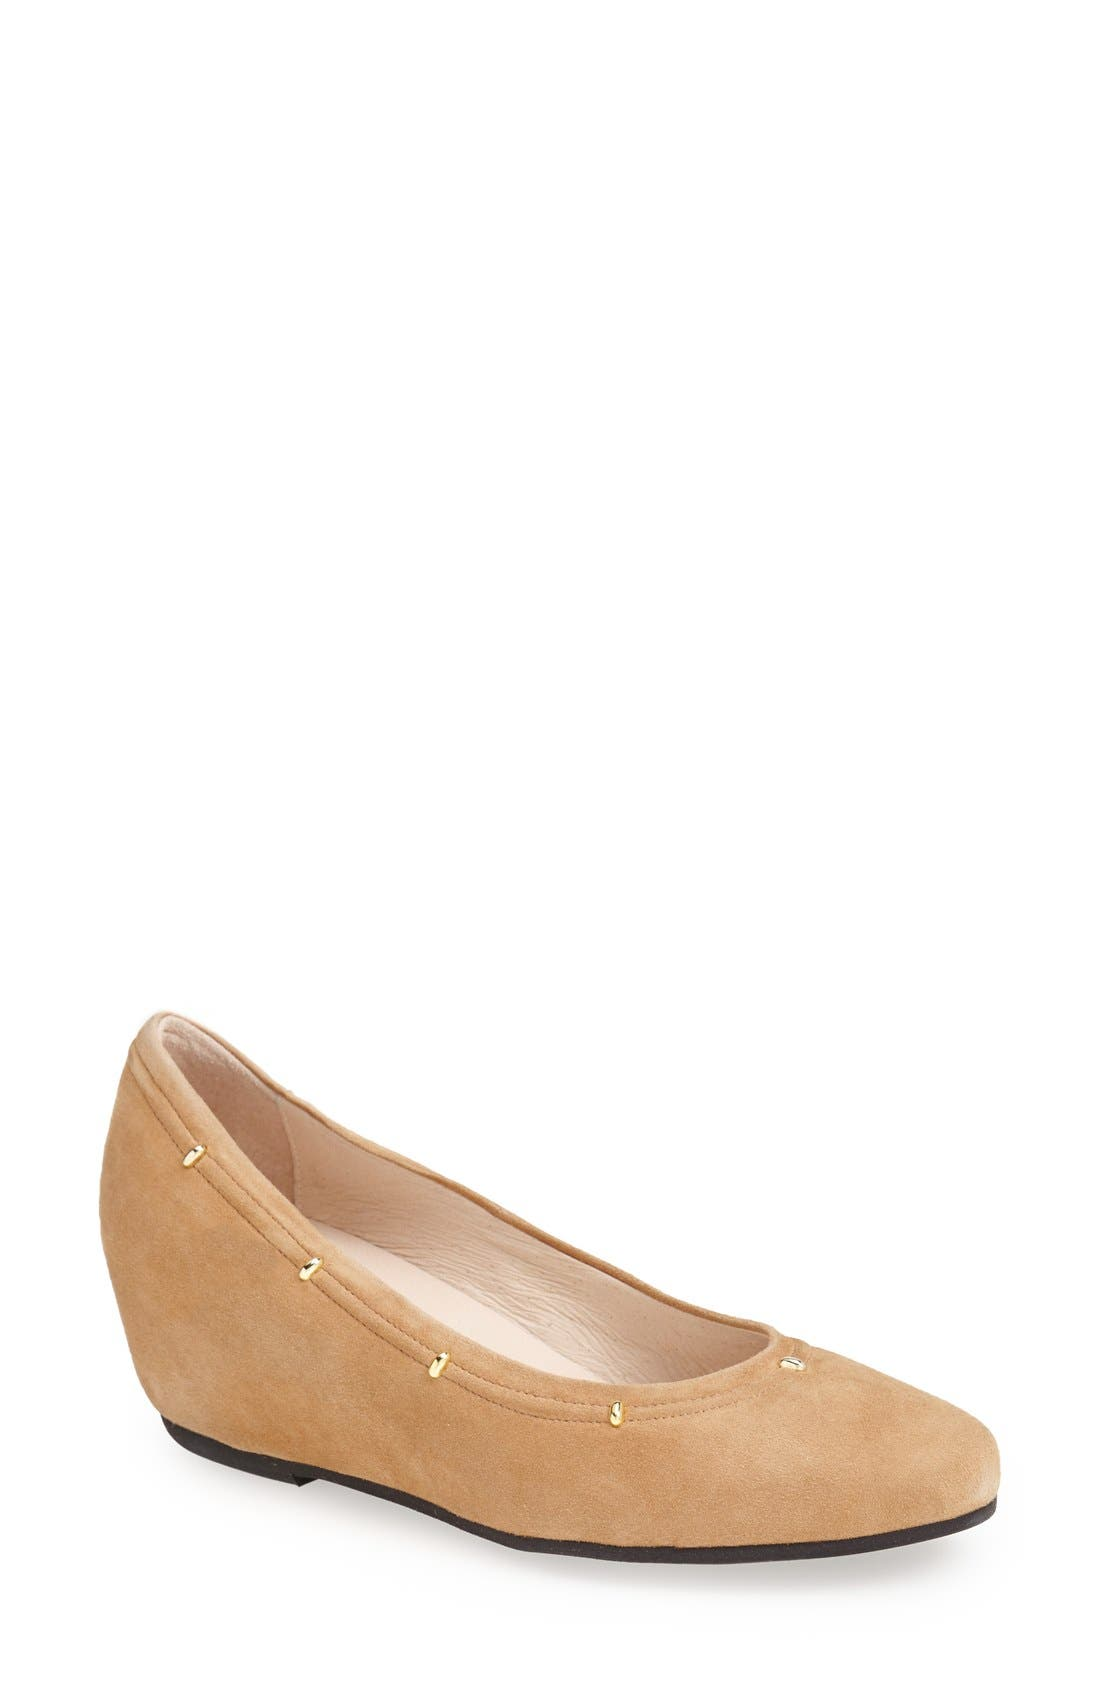 Main Image - French Sole 'Midas' Hidden Wedge Pump (Women)